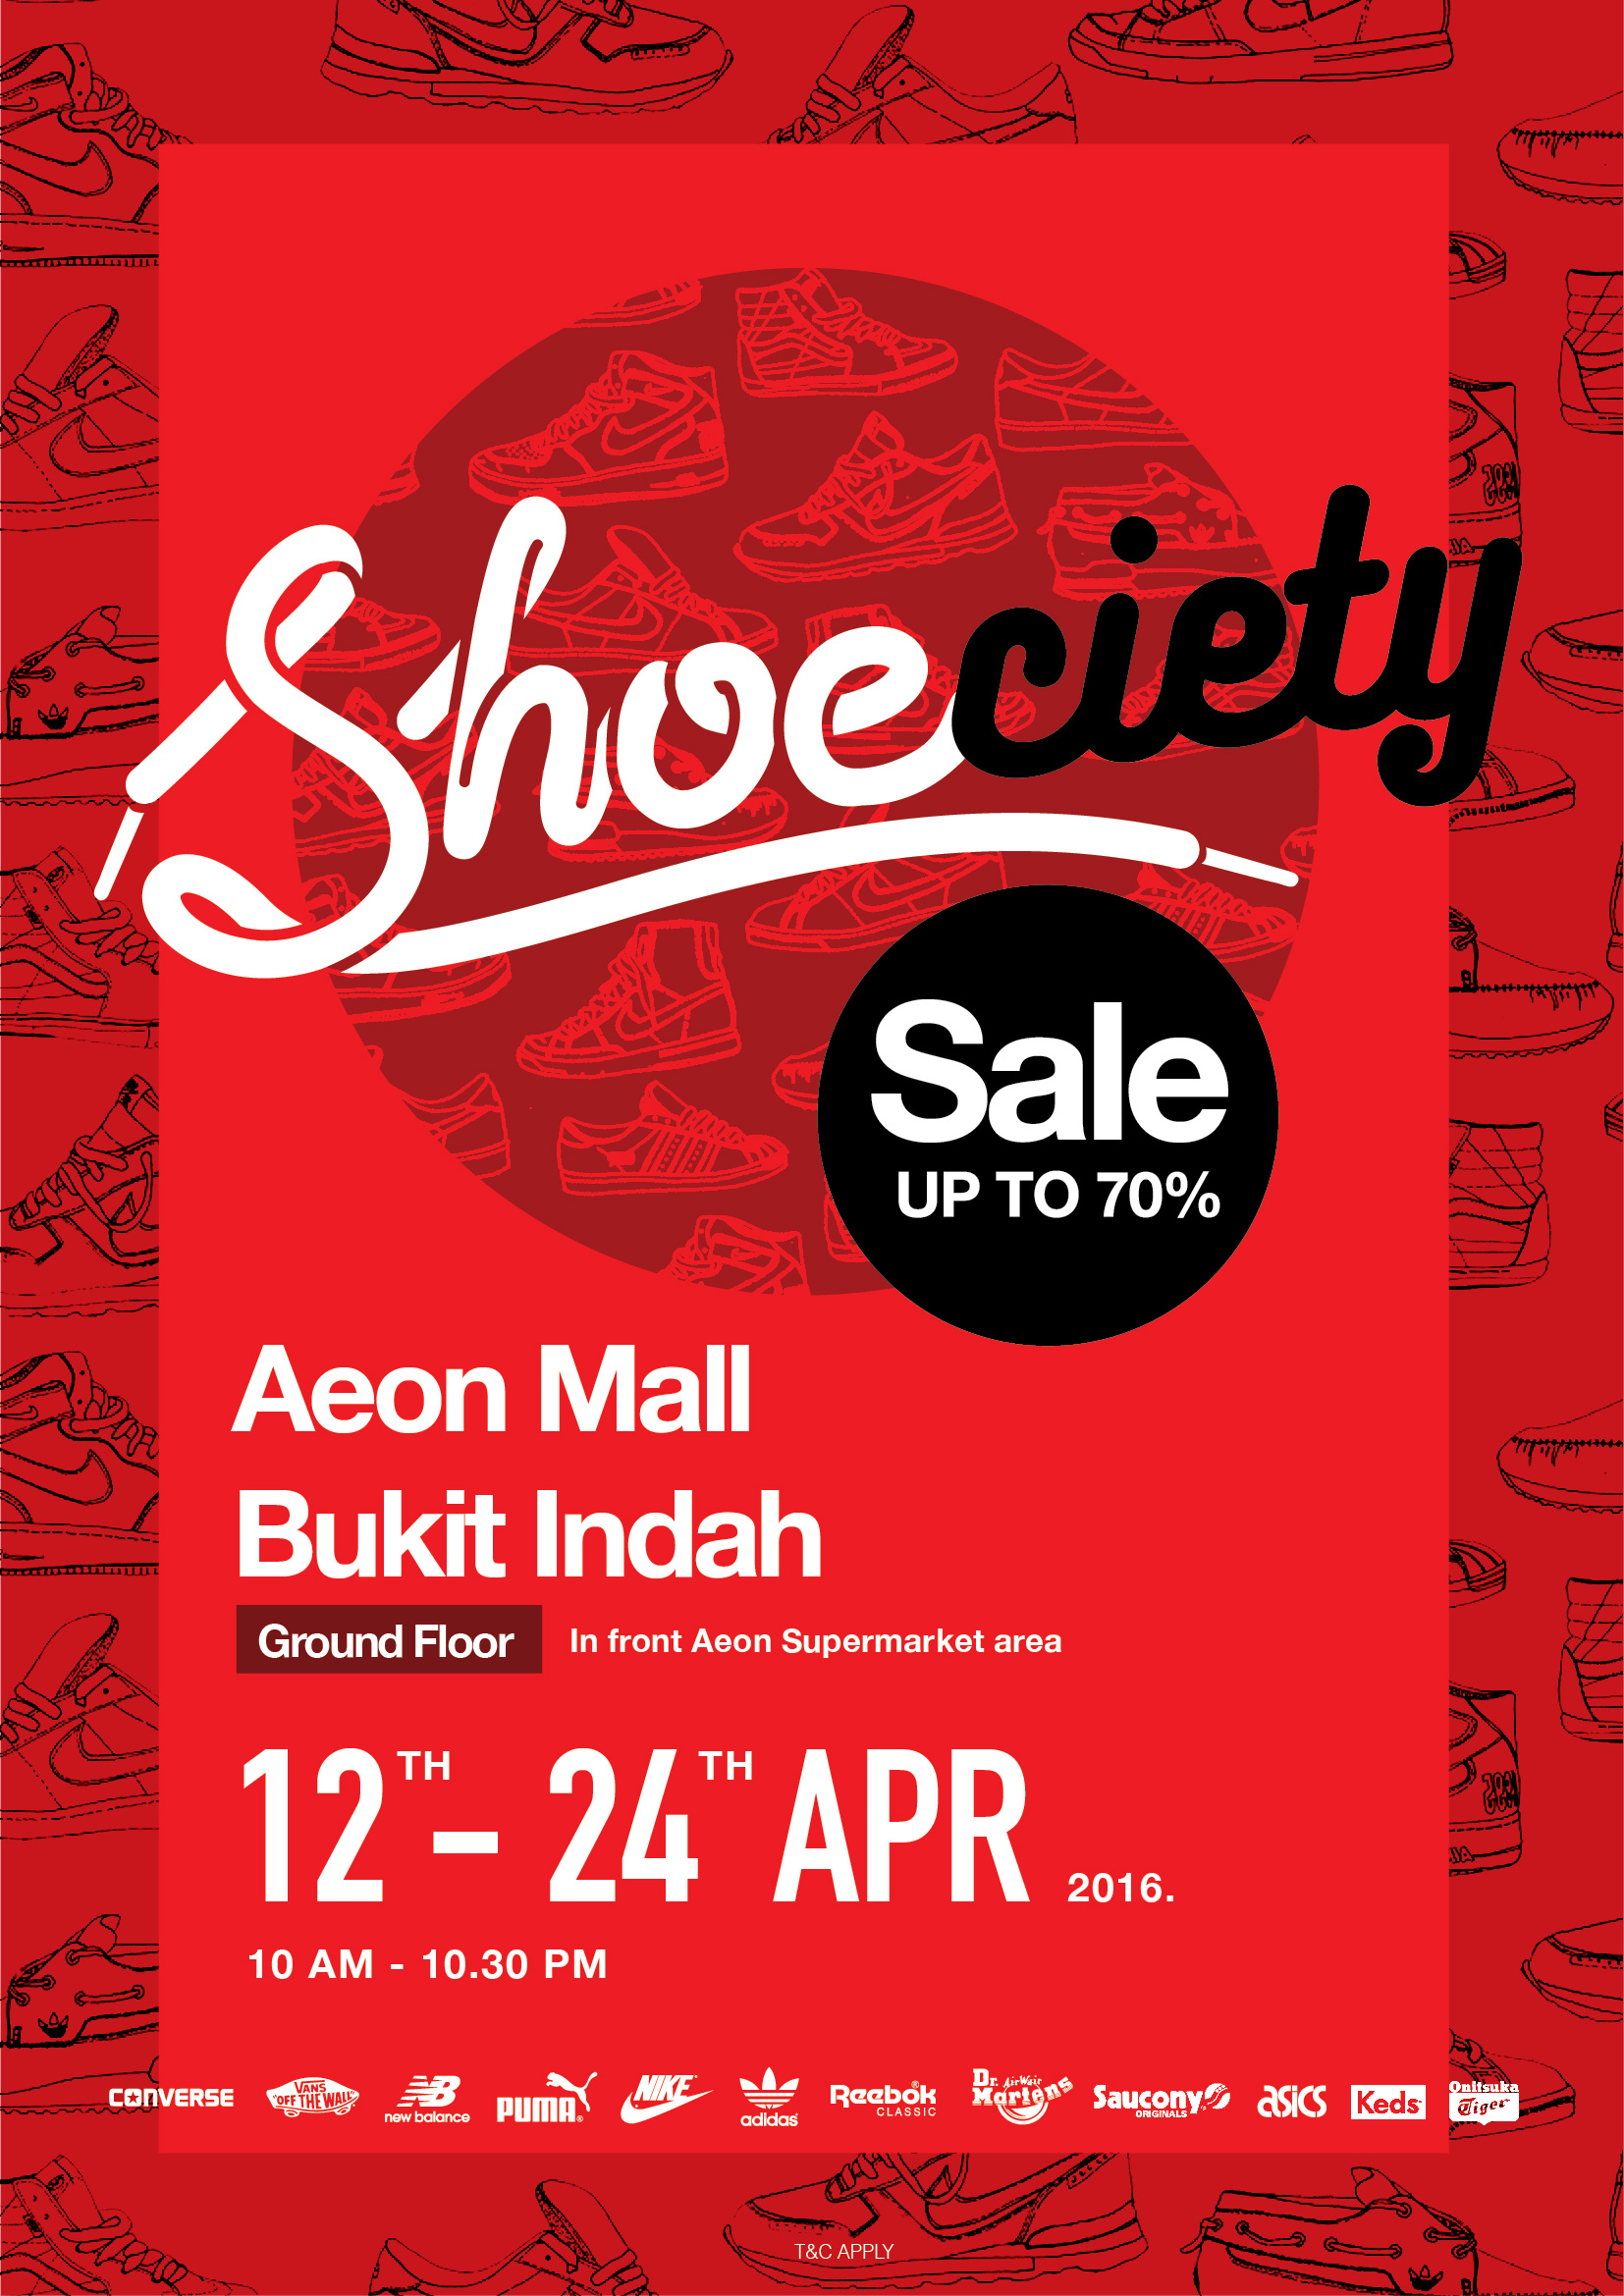 SHOEciety_April2016_BukitIndahSale_A1Poster1